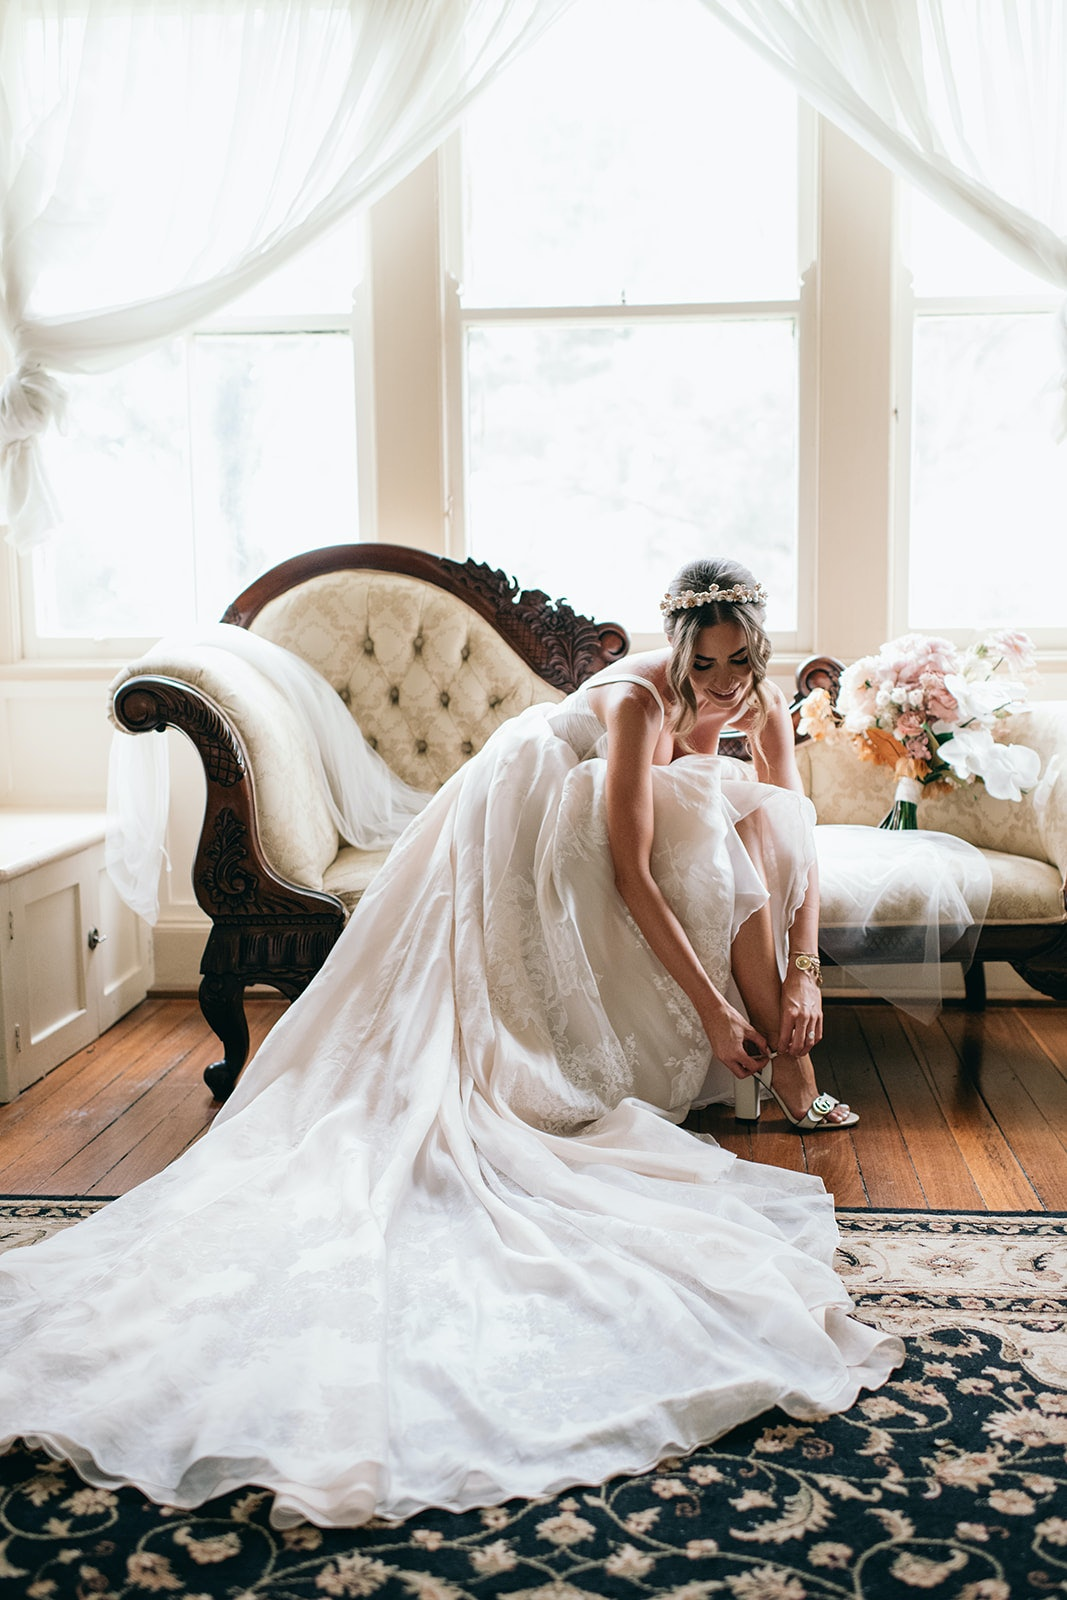 Bride doing up her shoes